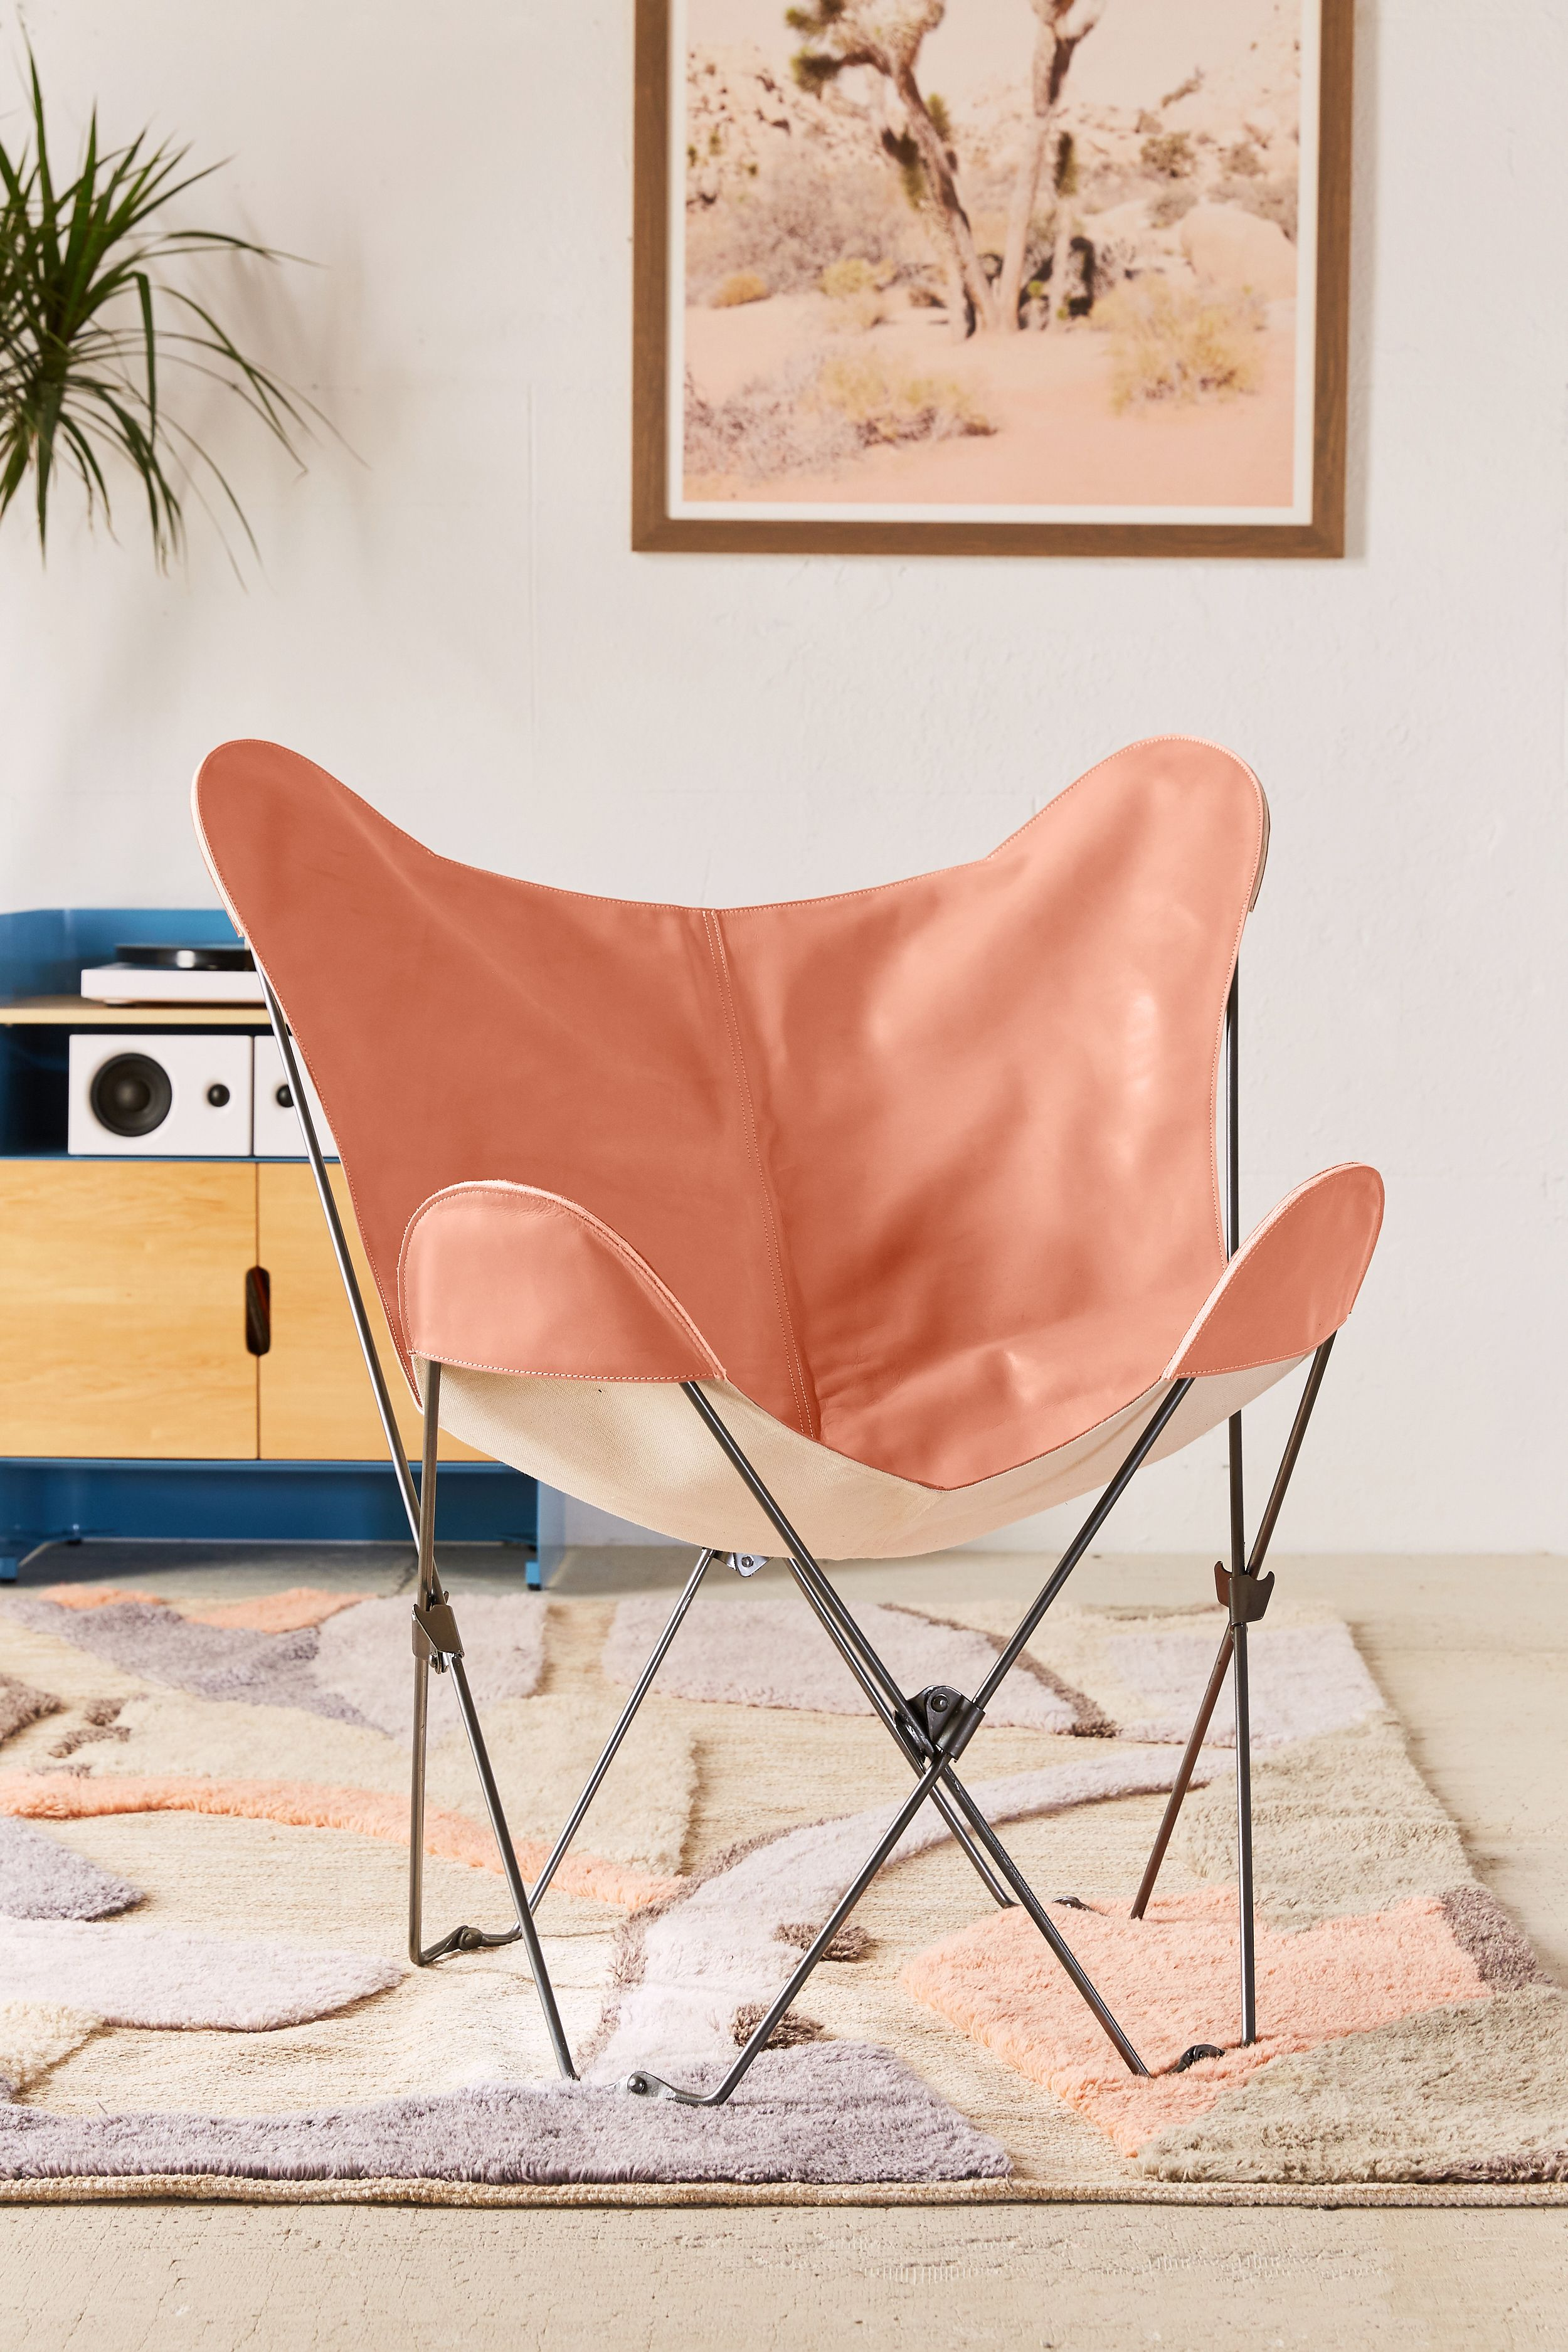 Awe Inspiring S Urbanoutfitters Com Shop 100 Dollar Christmas Cjindustries Chair Design For Home Cjindustriesco